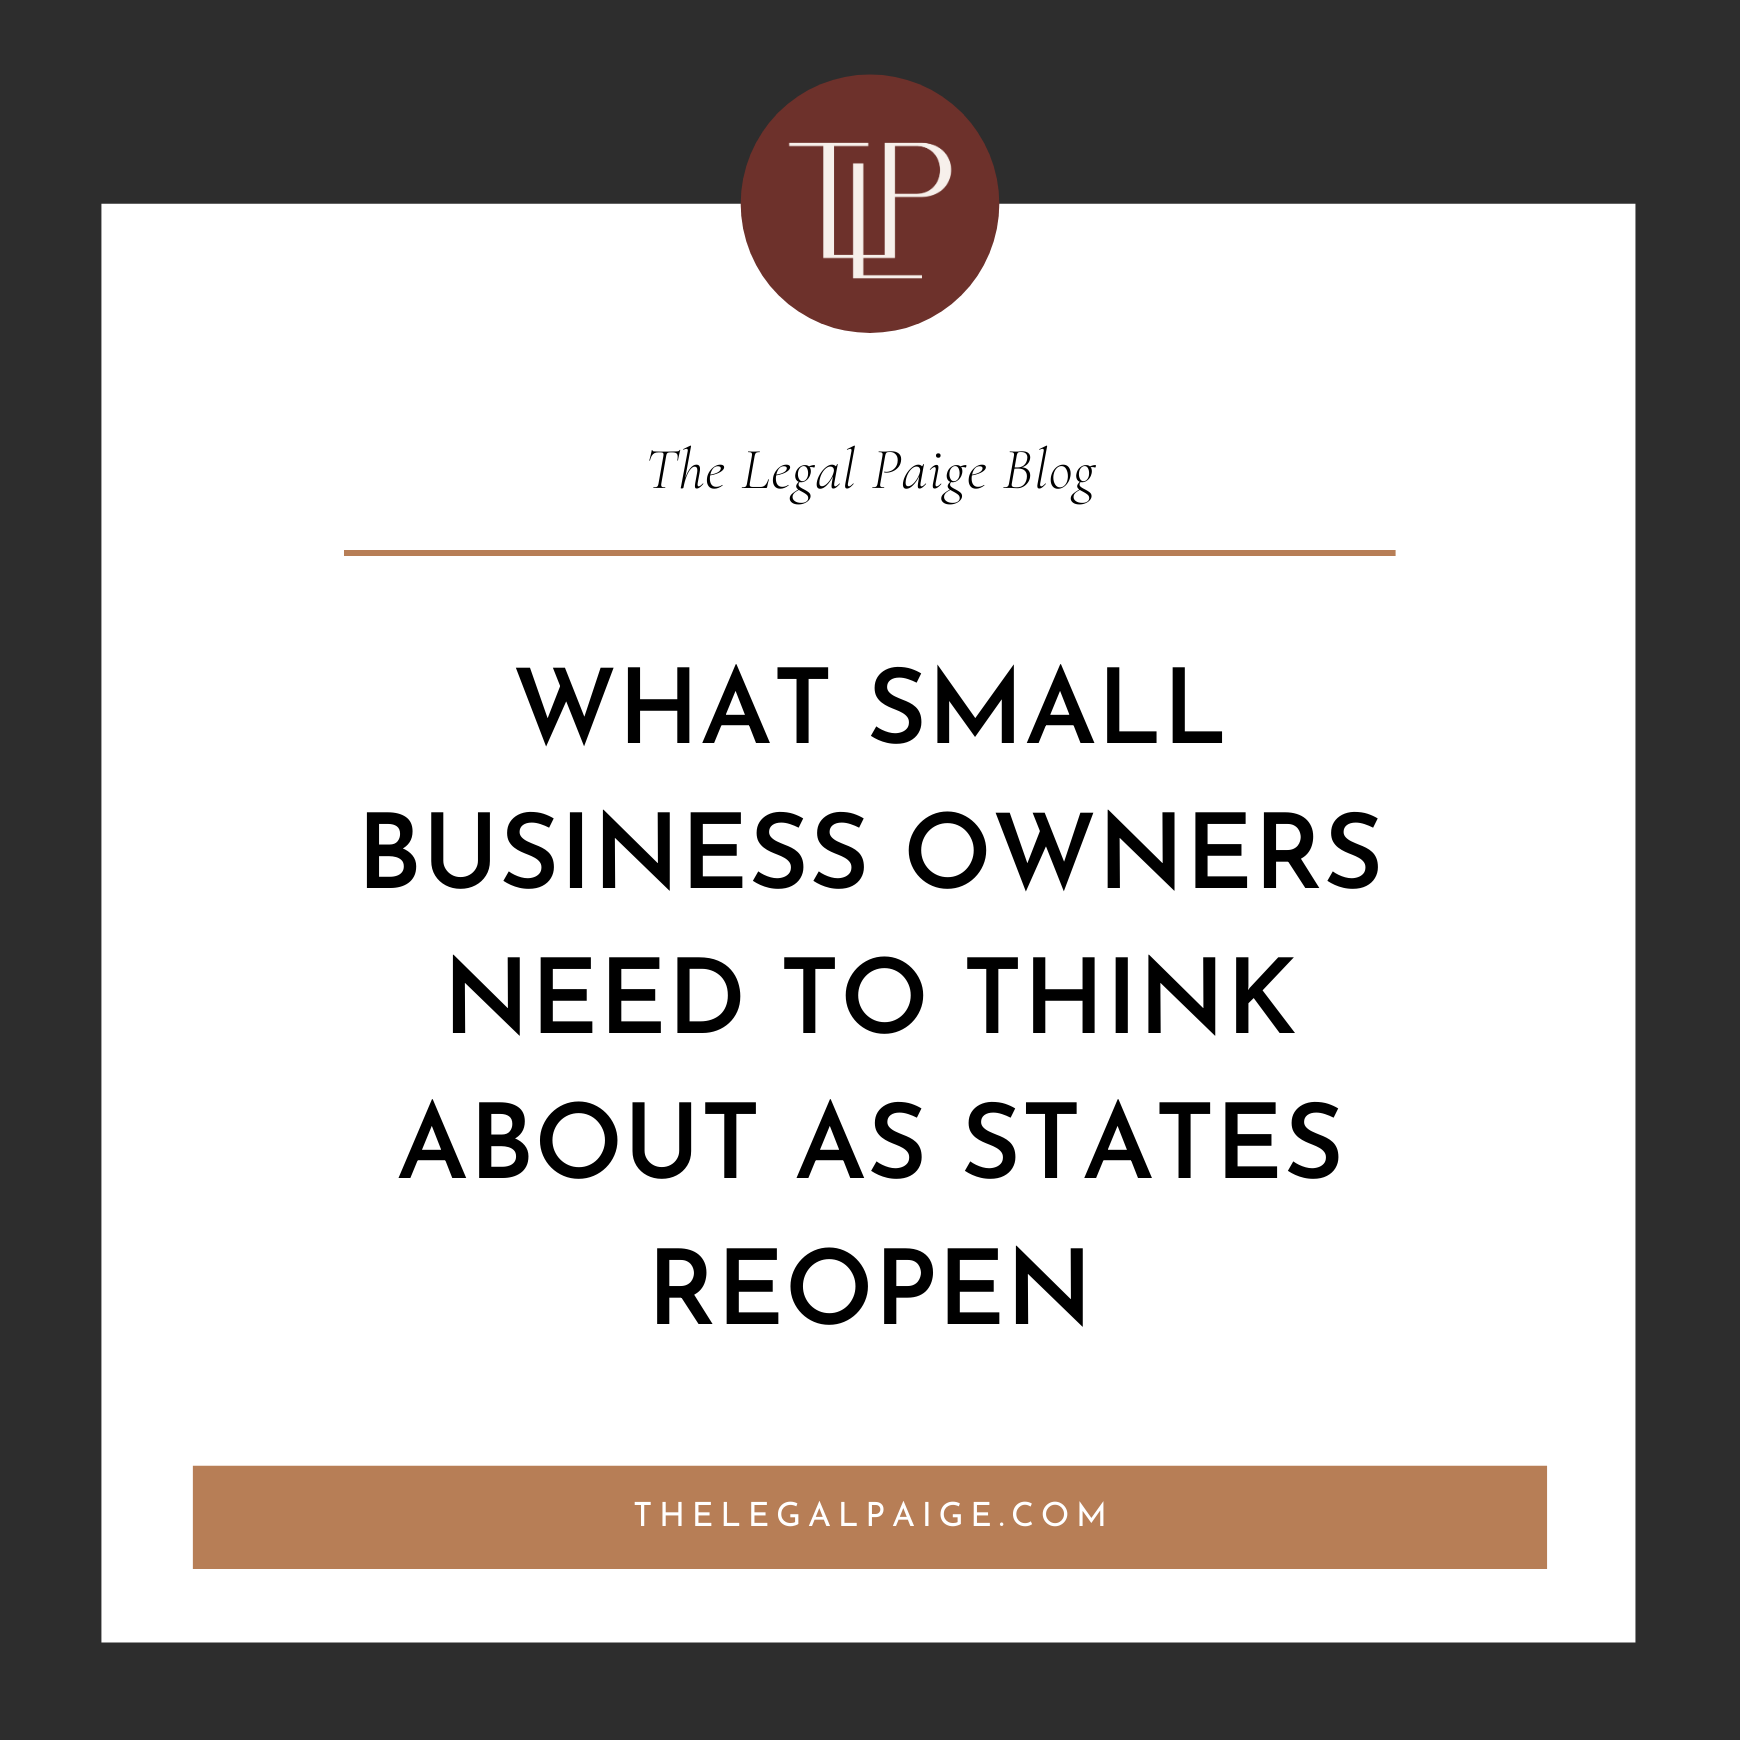 What Small Business Owners Need to Think About as States Reopen